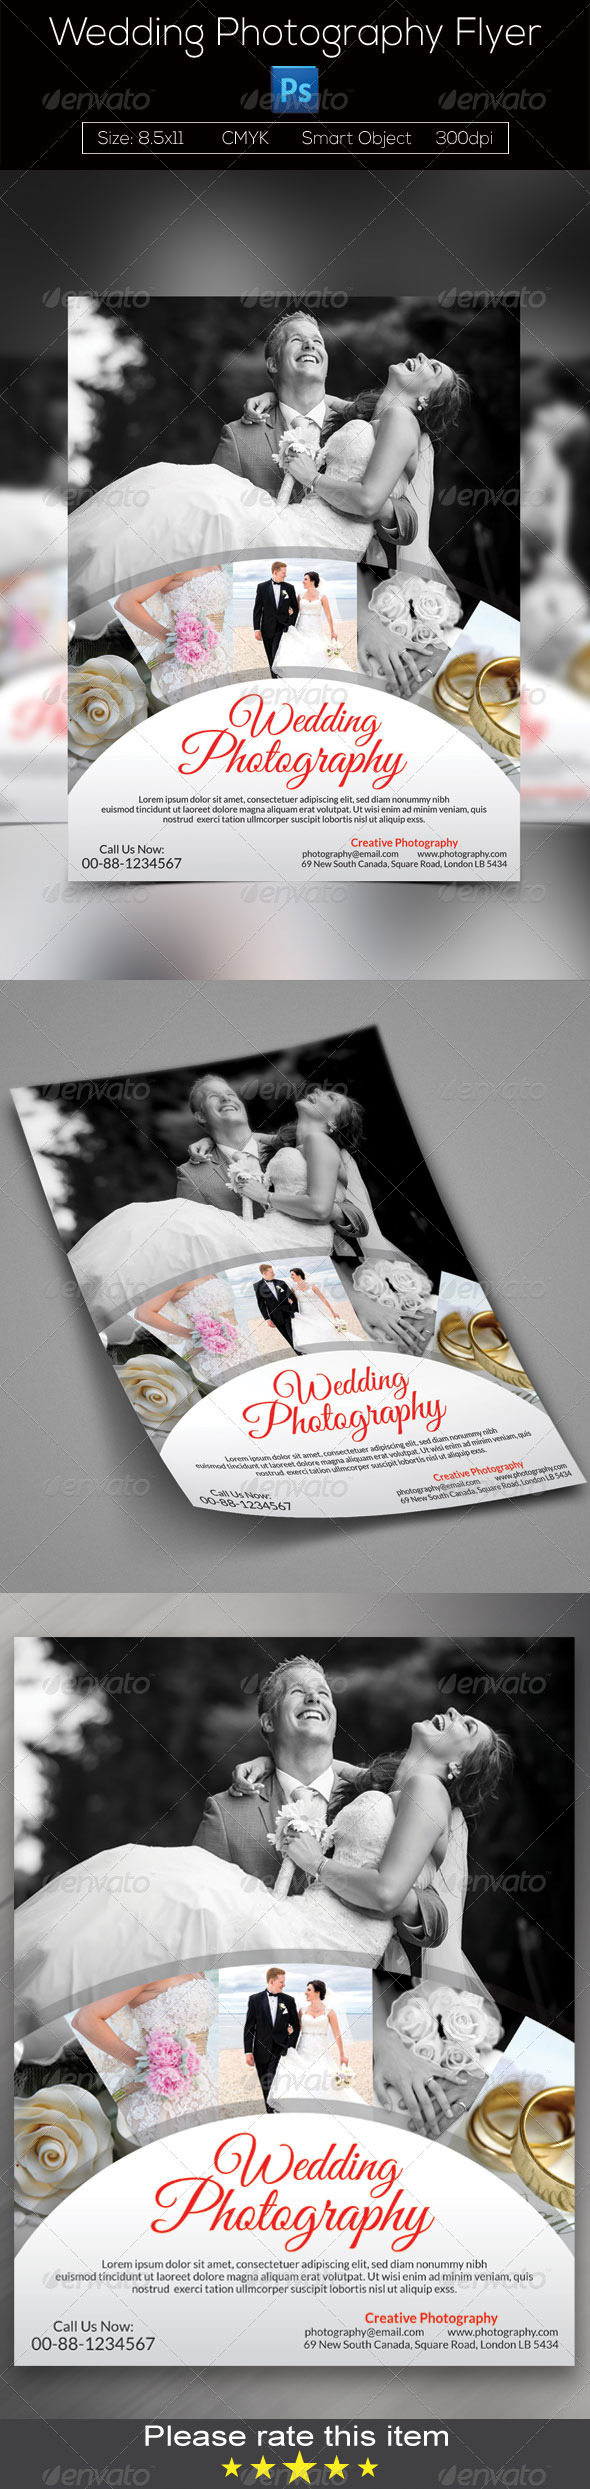 GraphicRiver Wedding Photography Flyer 7802511